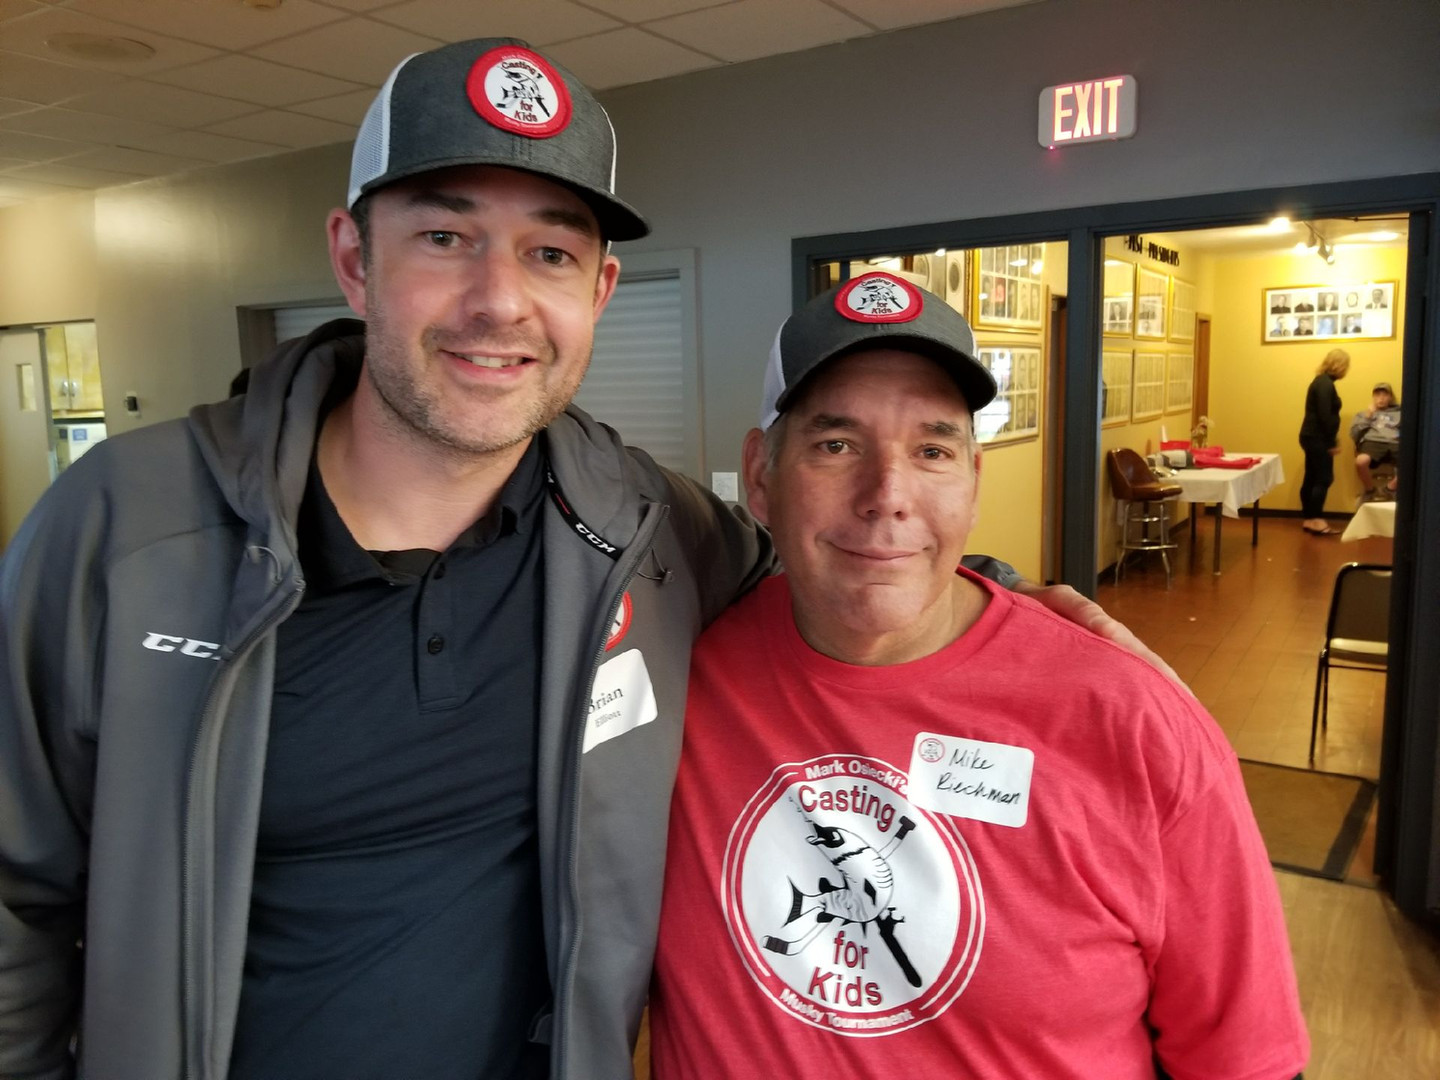 Brian Elliot and Mike Riechman had a great time at the 2nd Annual Mark Osiecki's Casting for Kids Dinner and Banquet. 6/01/19